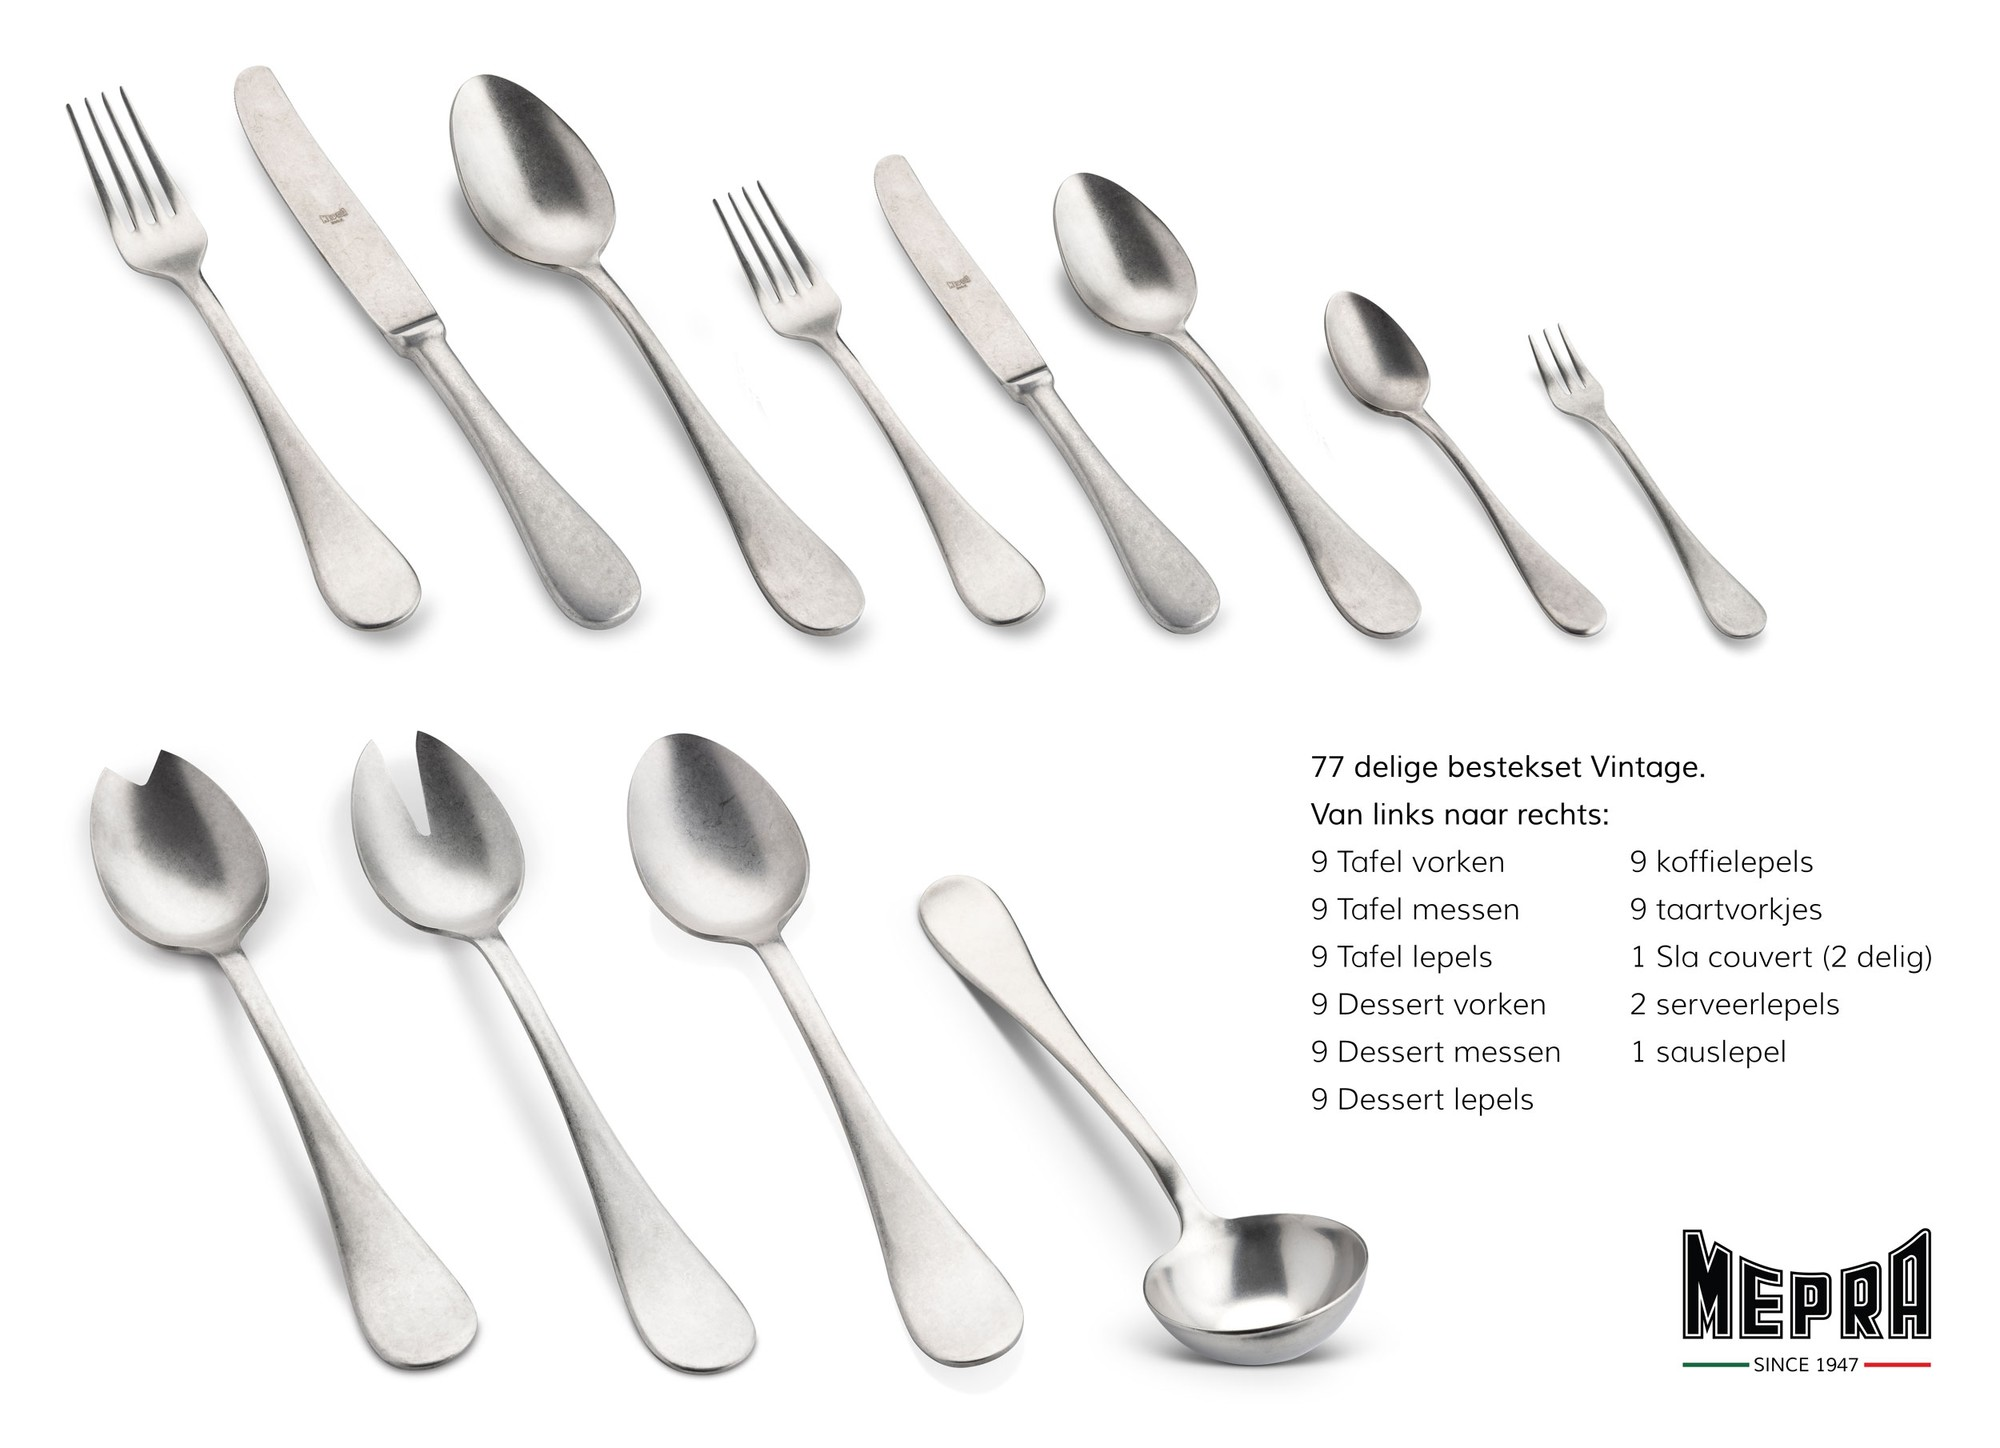 Cutlery Set 78 Pcs Vintage